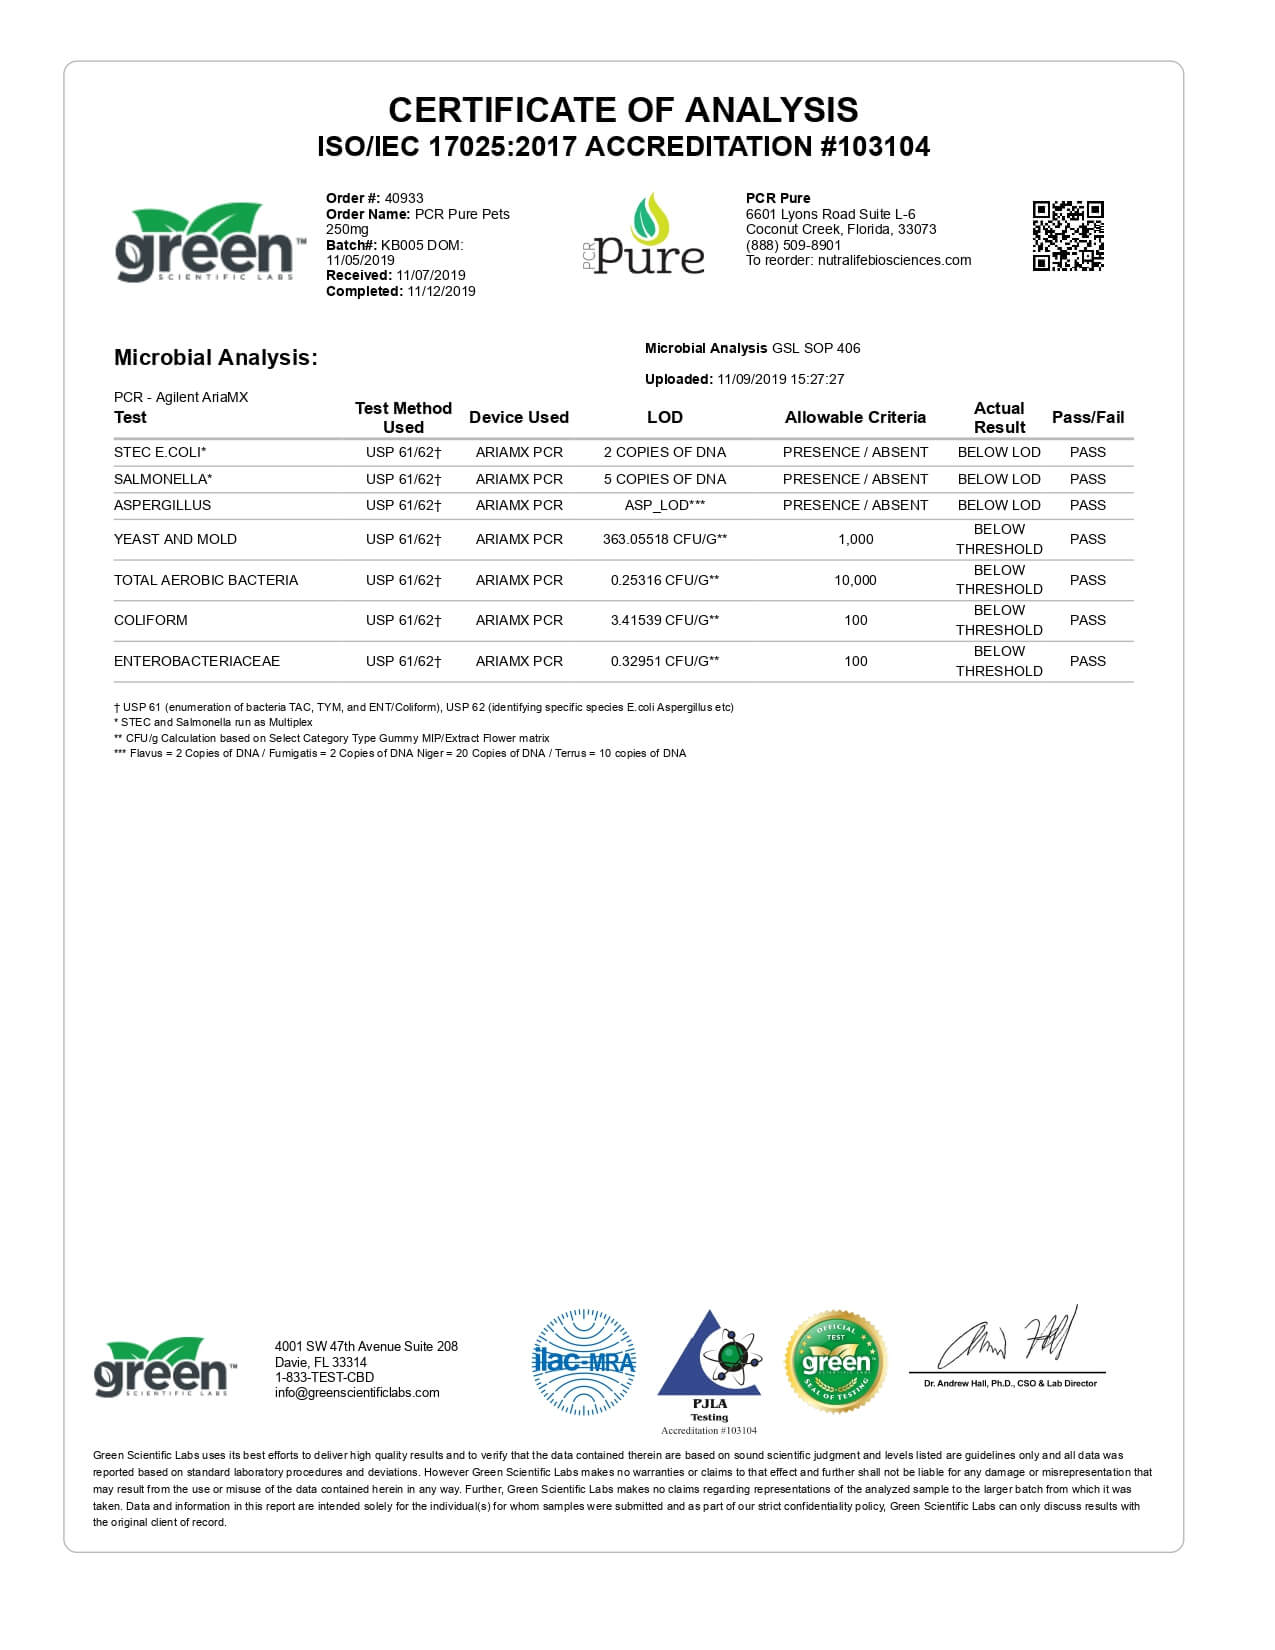 PCR Pure CBD Pet Tincture Full Spectrum Wellness Lab Report